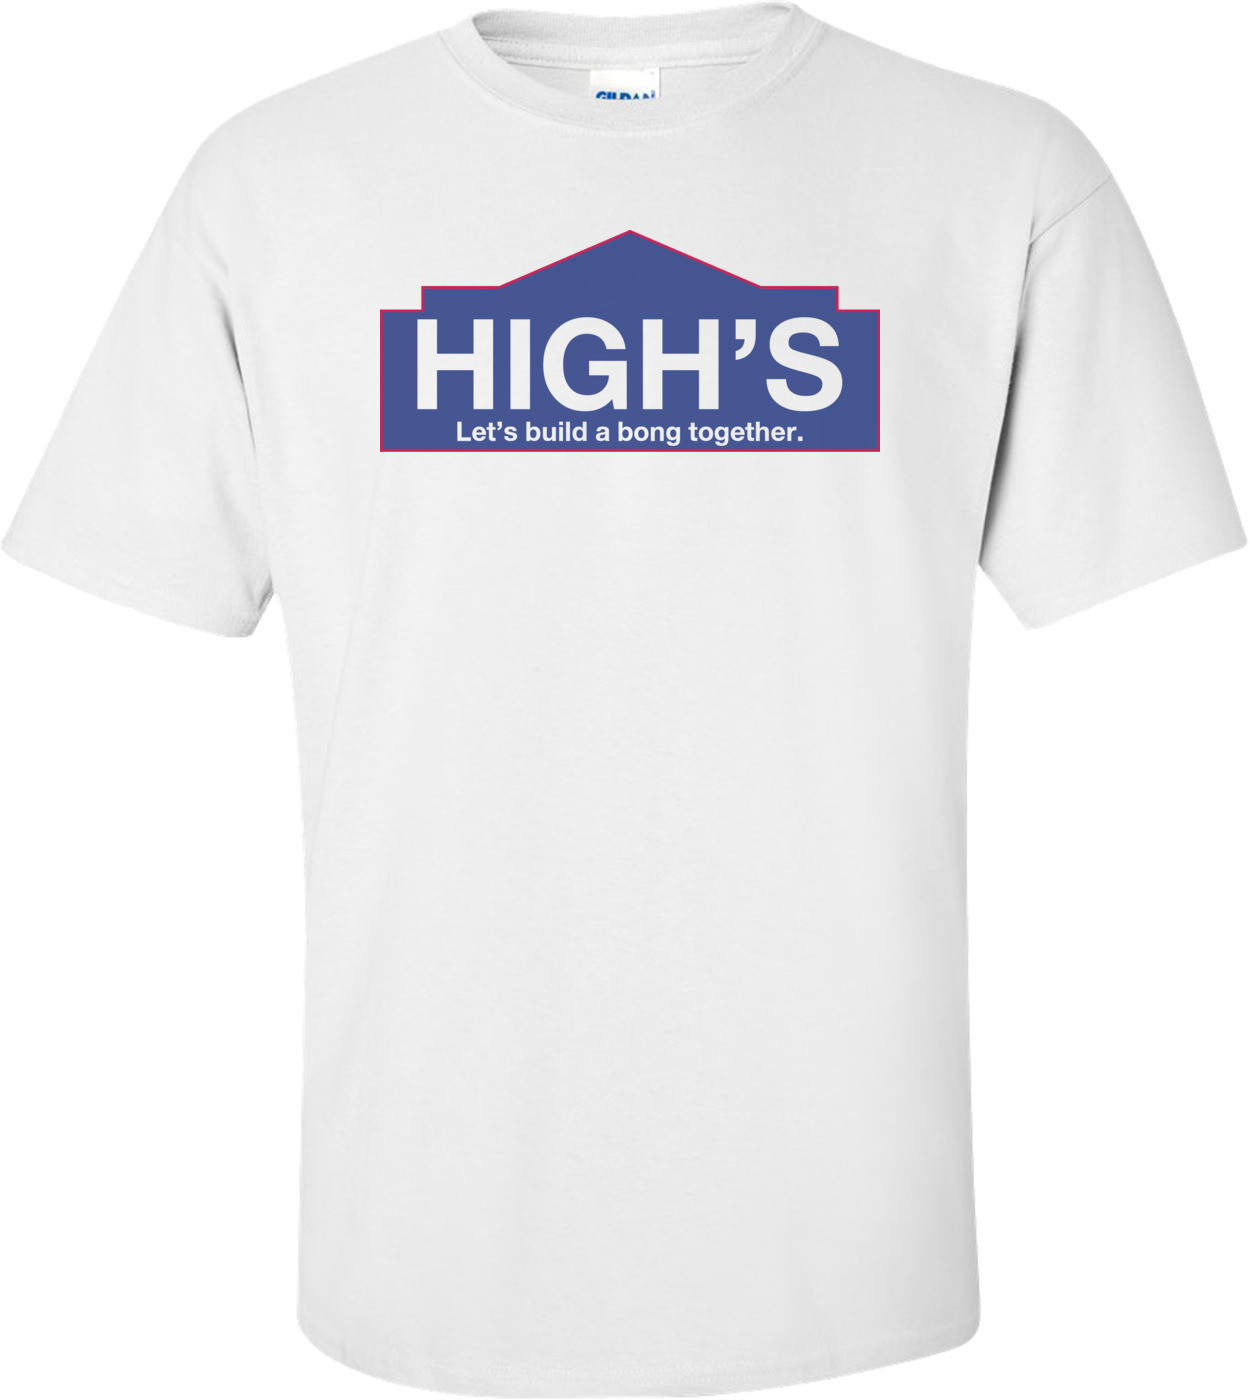 High's Let's Build A Bong Together Funny Shirt